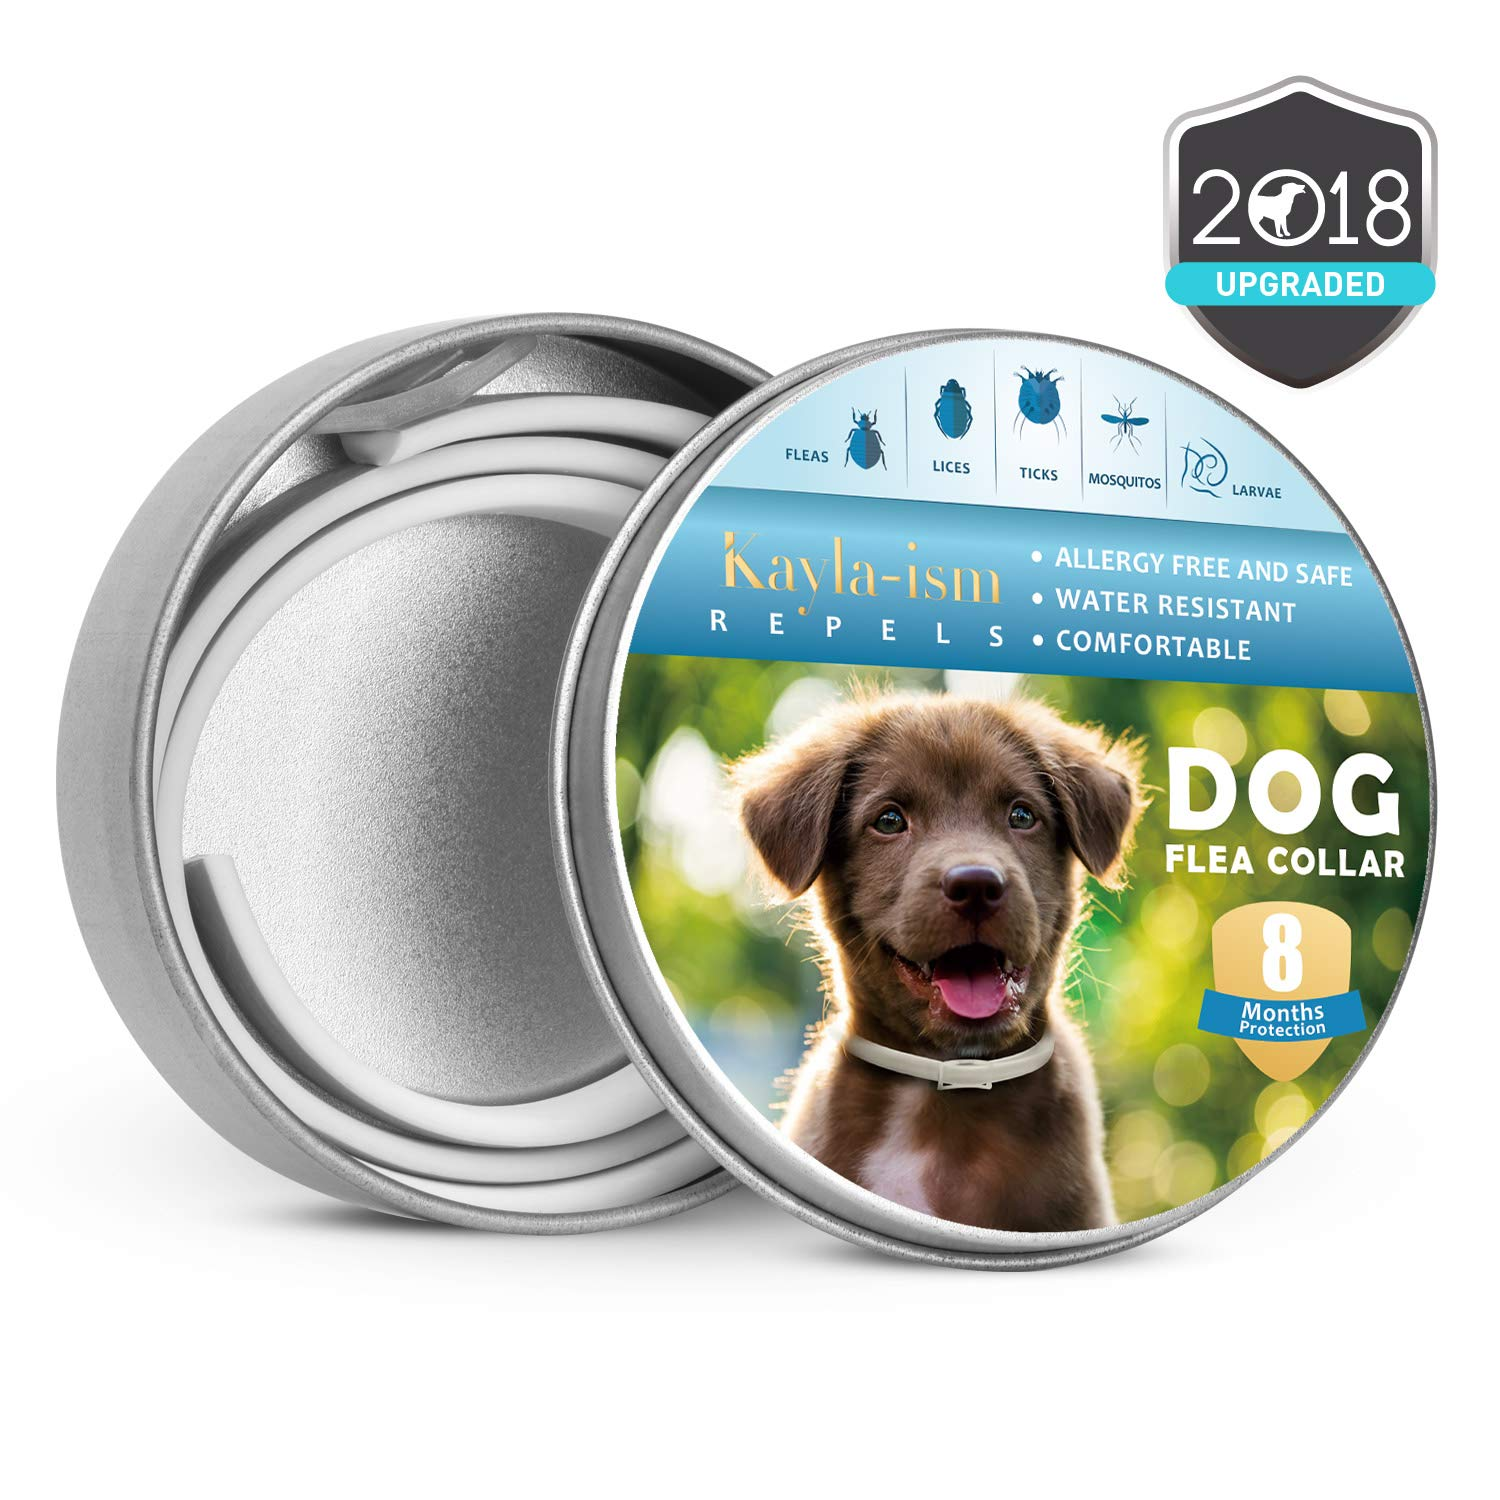 Kayla-ism Dog Flea and Tick Collar, Natural and Essential Oils, Waterproof, One Size Fits All, 8 Months Full Protection, Healthy and Harmless